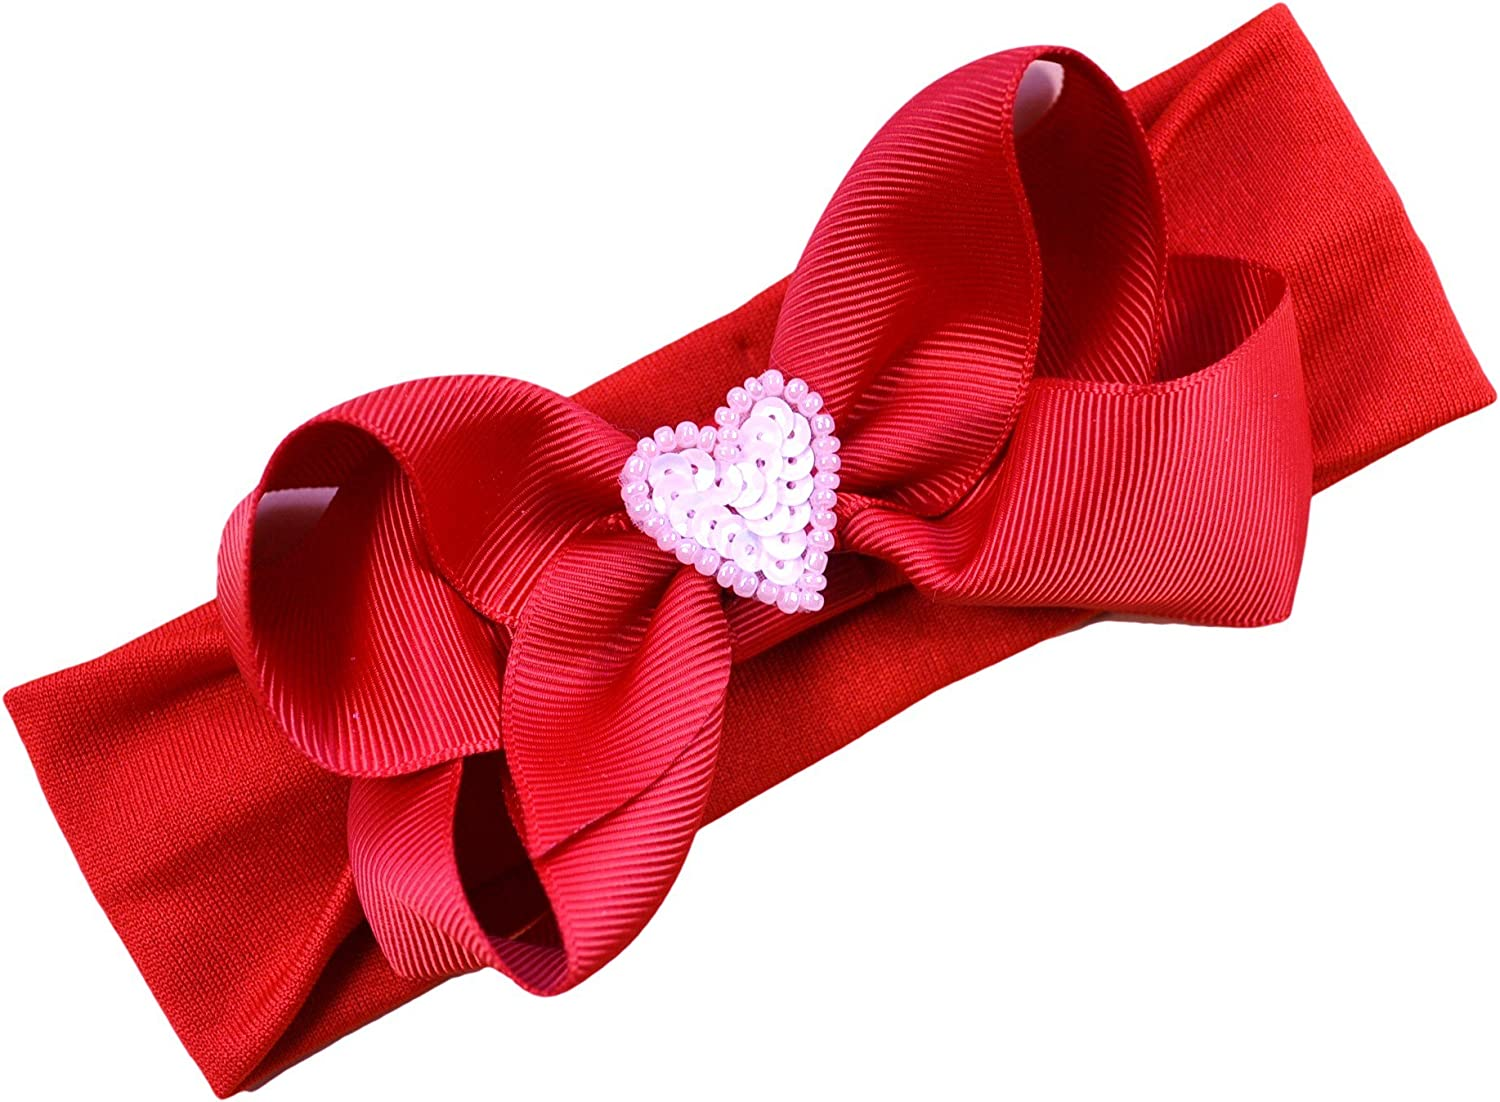 0-6 Month Red And Black Glitter Bow Headband